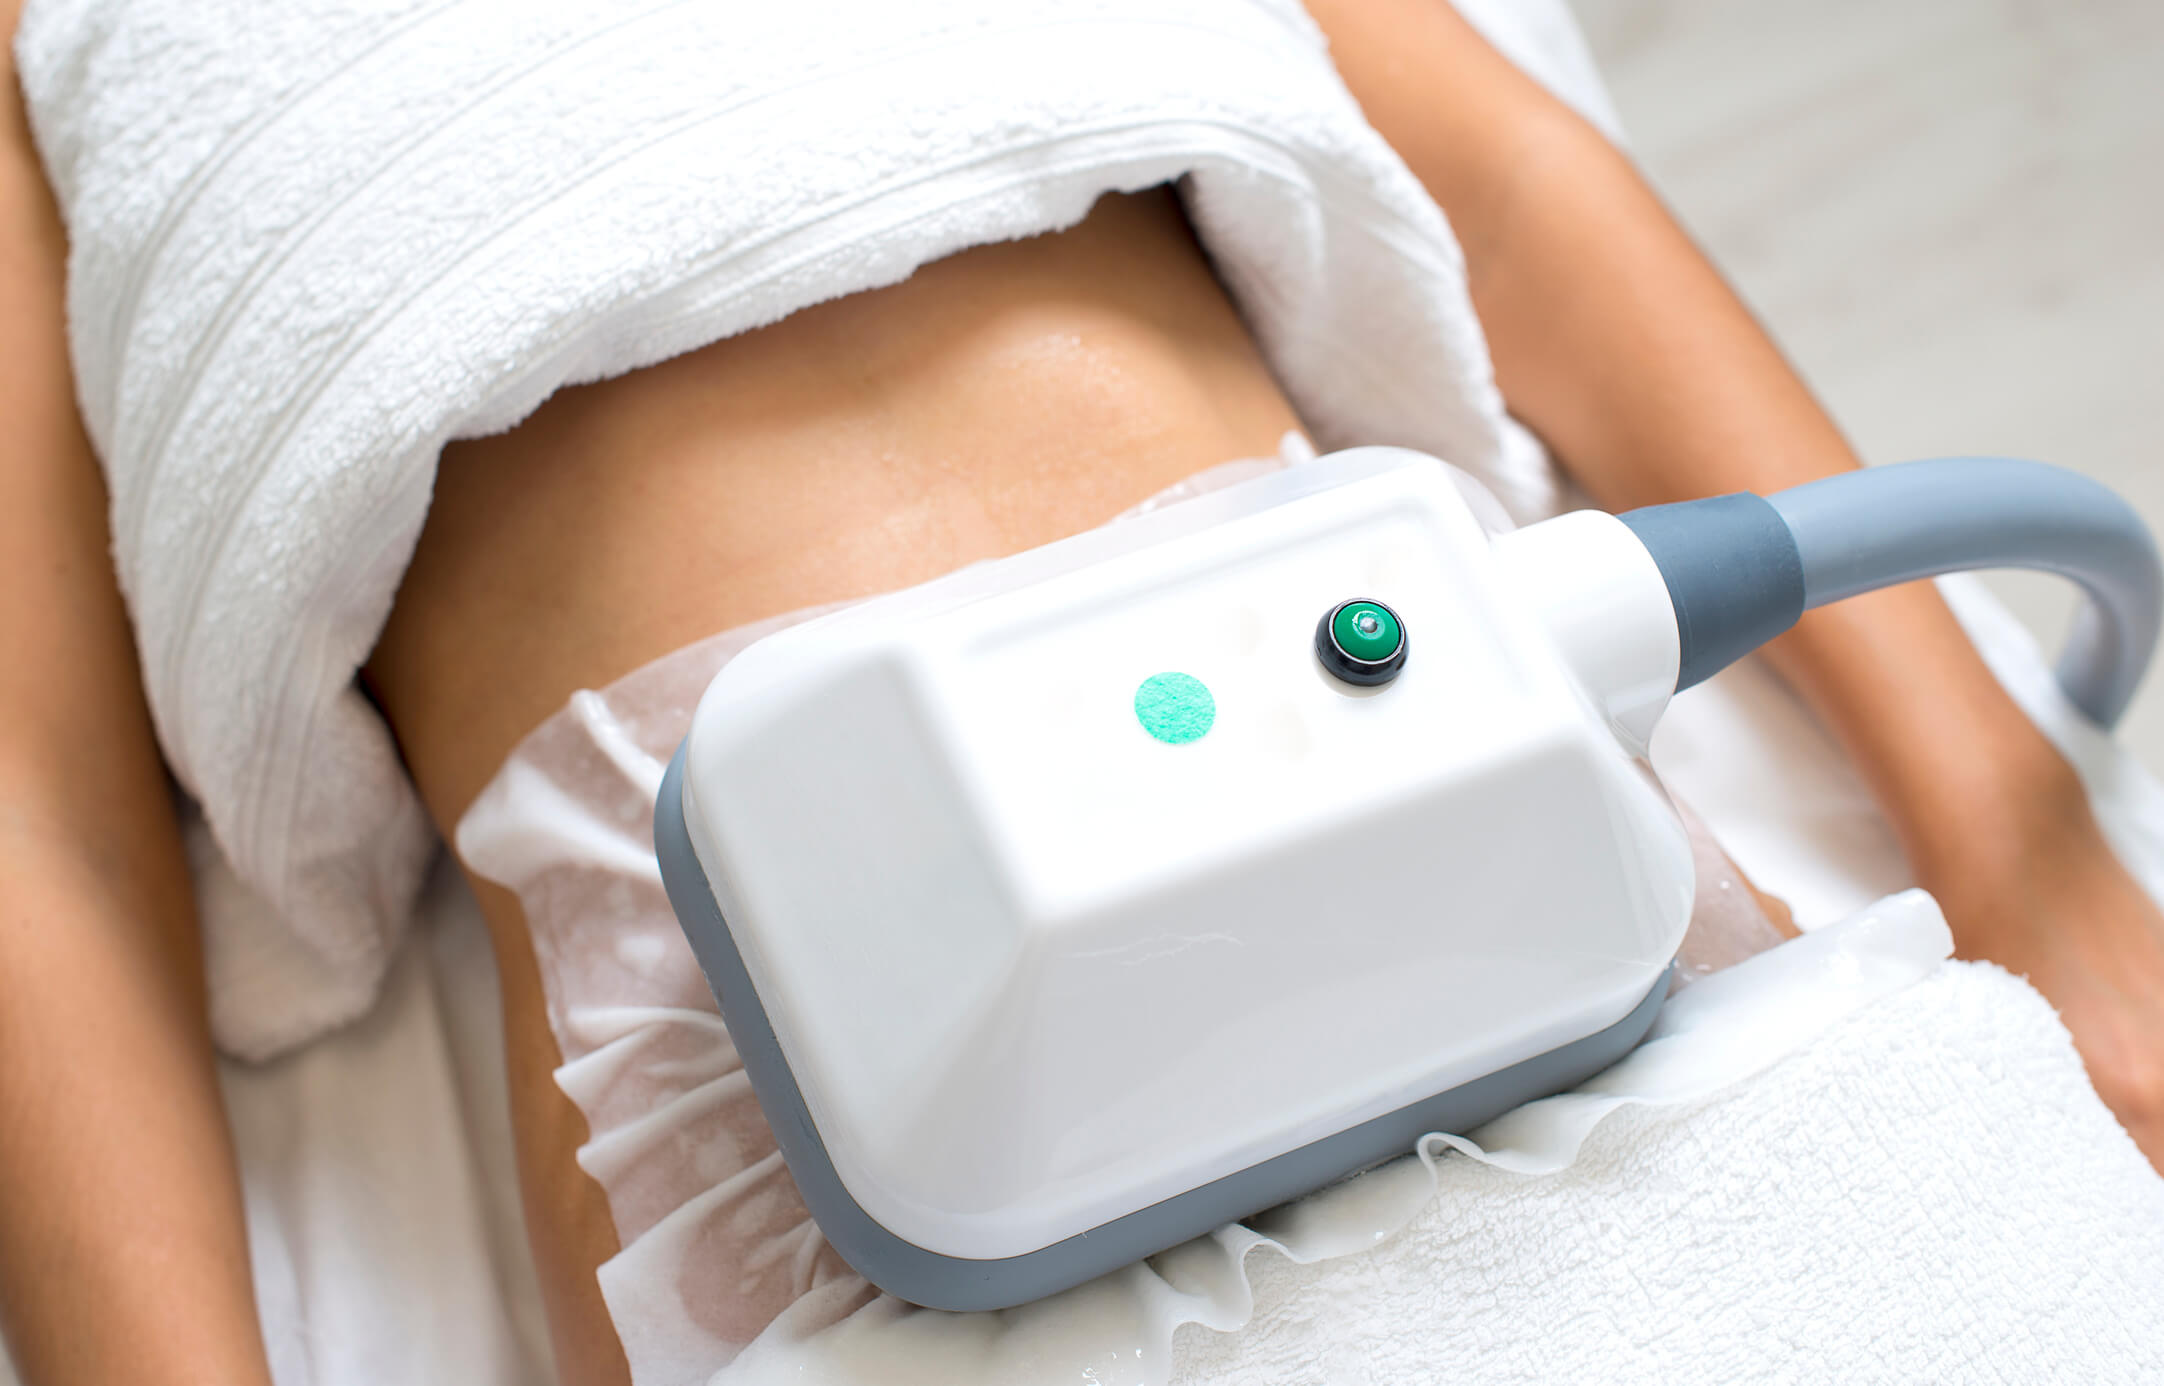 The effectiveness of Coolsculpting technology freezing fat from a women's stomach